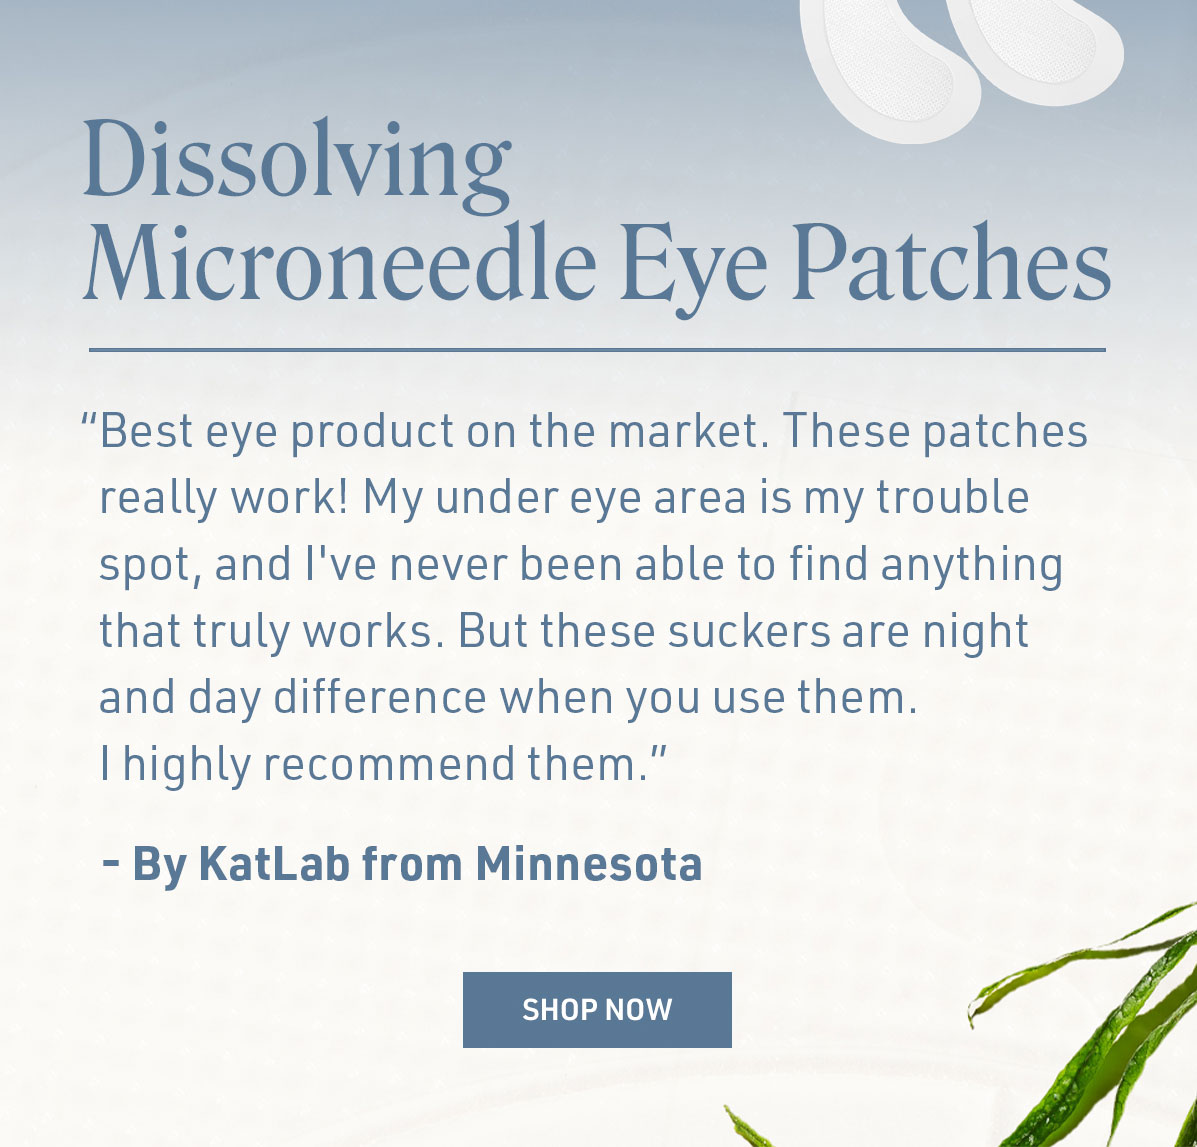 Dissolving Microneedle Eye Patches